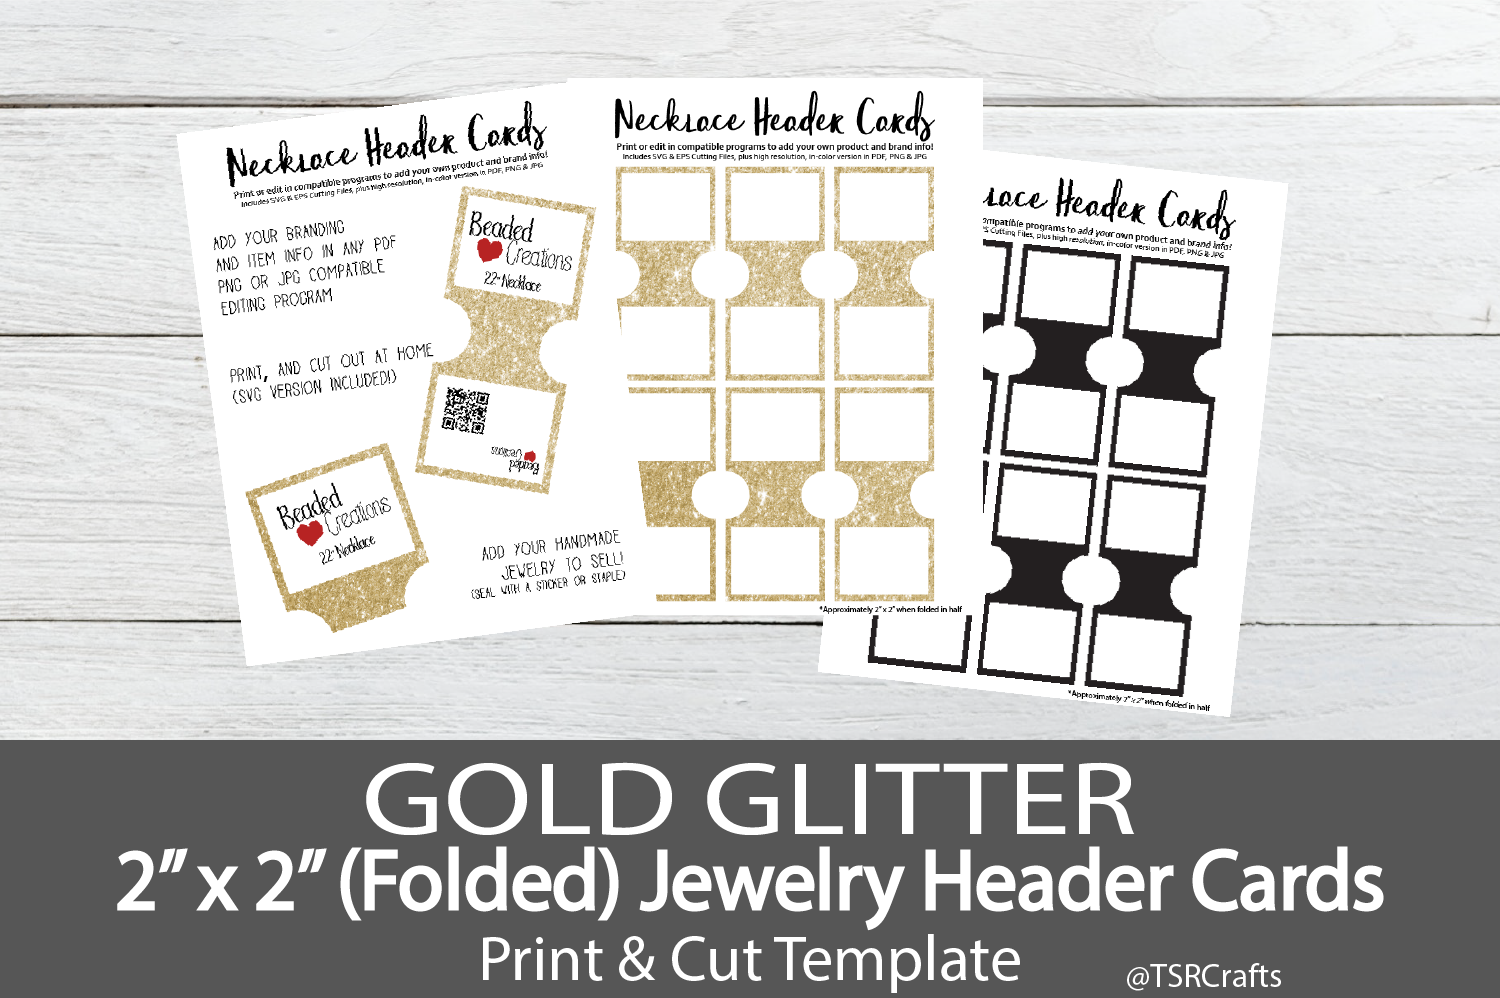 Jewelry Header Cards for Necklace - Gold Glitter example image 1